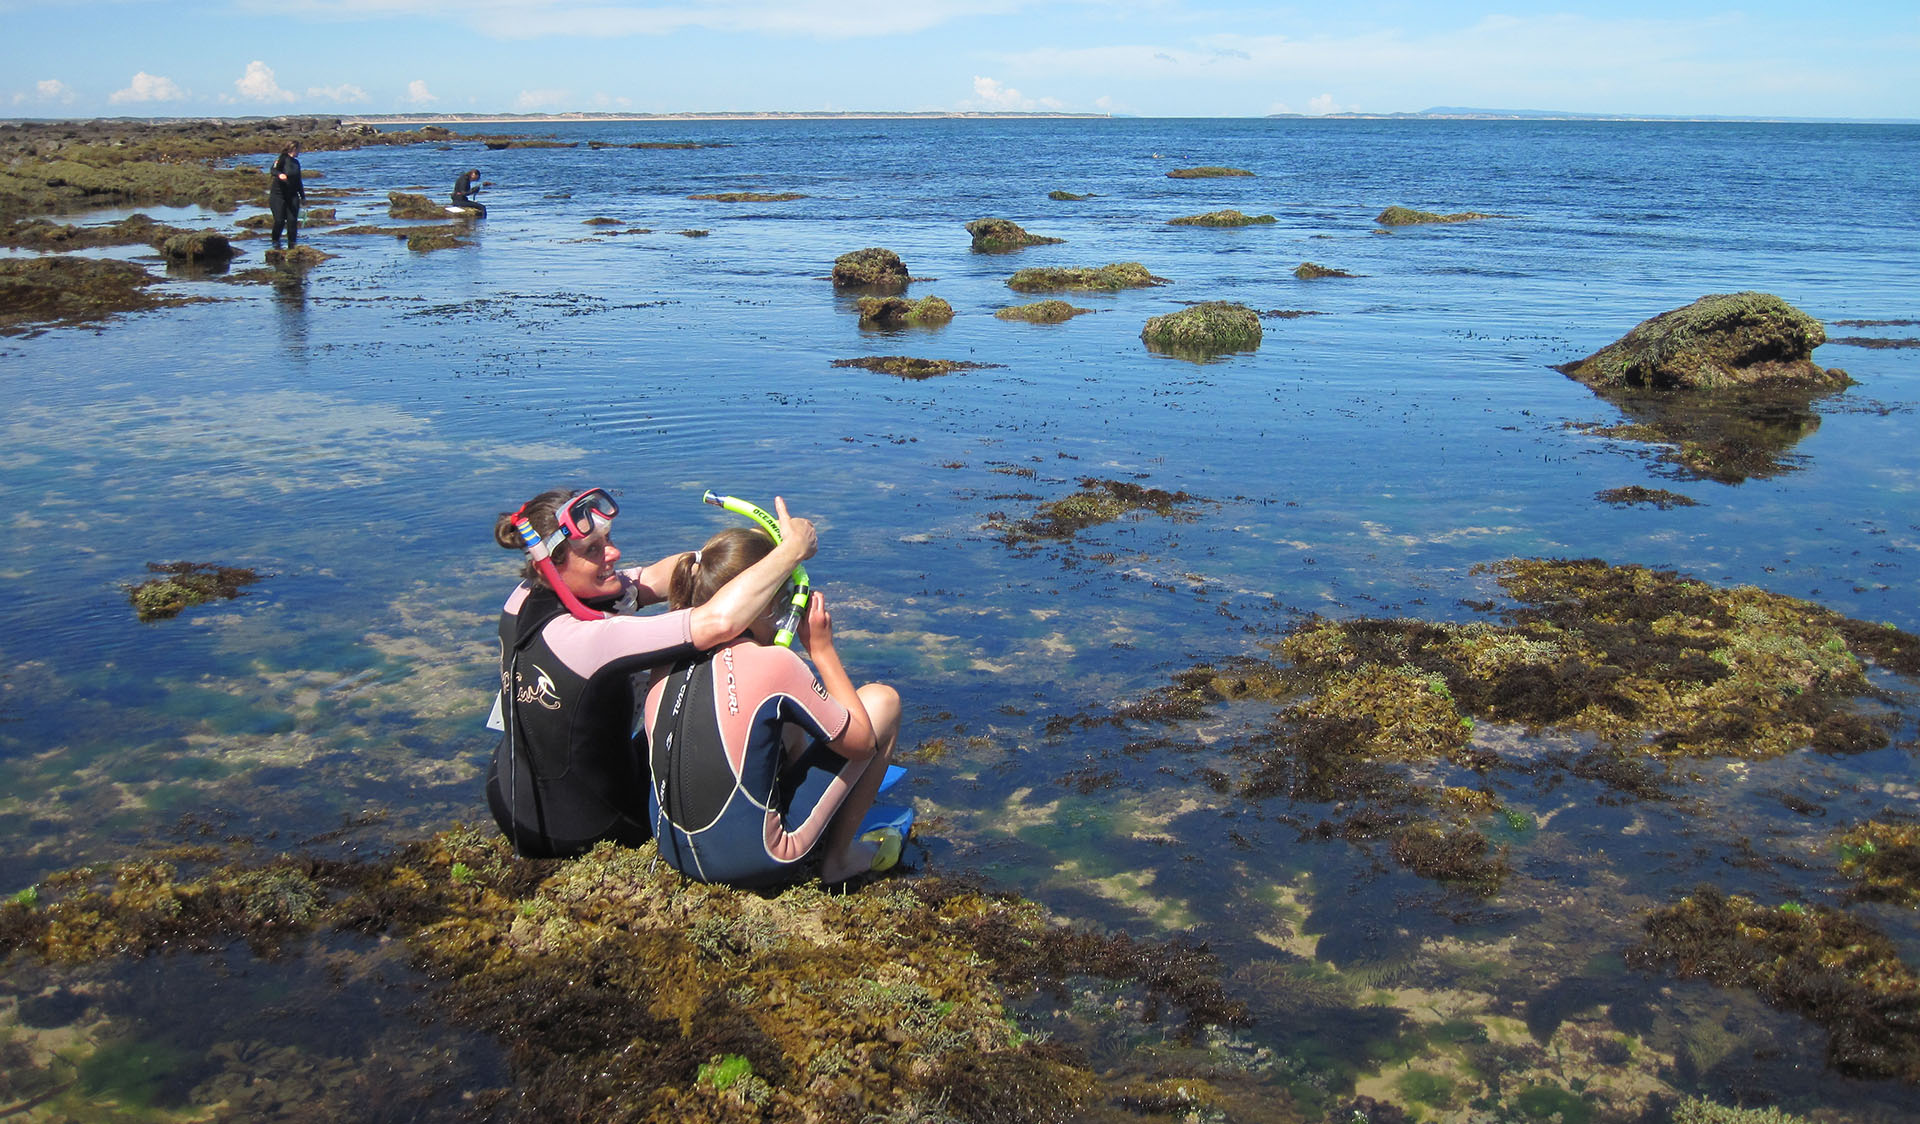 Snorkelling at Barwon Bluff Marine Sanctuary